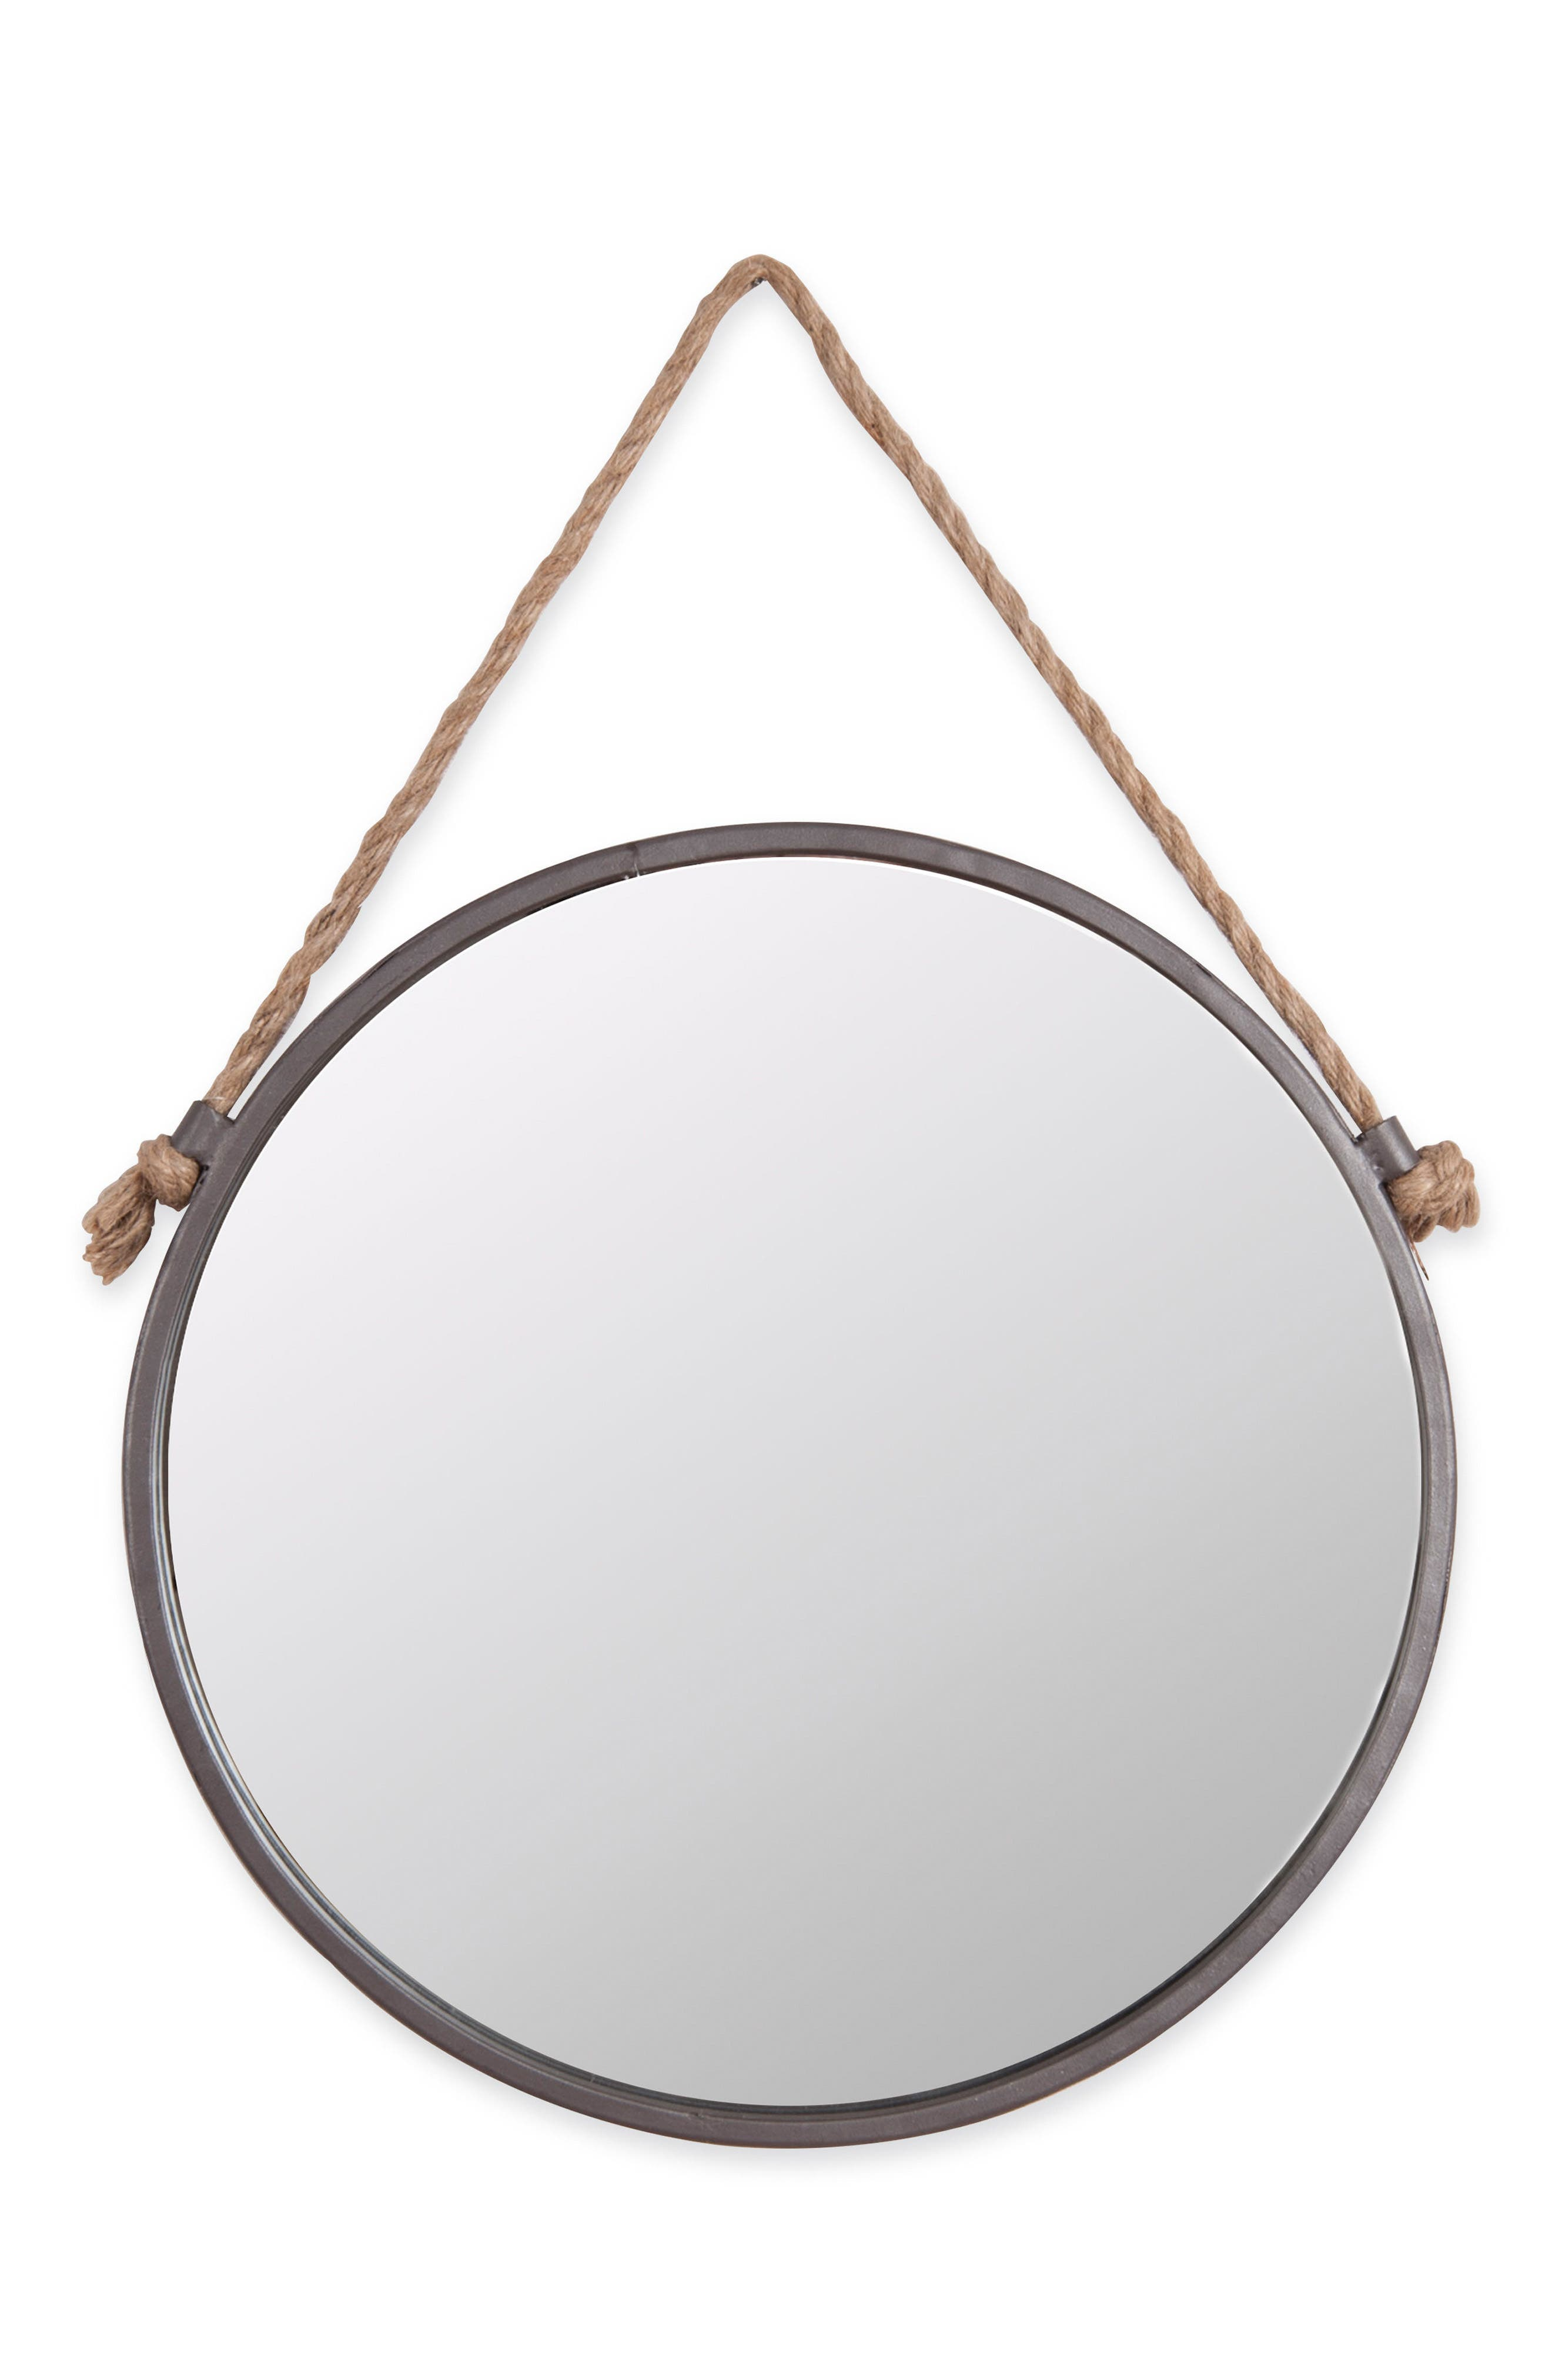 Round Mirror,                             Main thumbnail 1, color,                             Metal/ Wood/ Rope